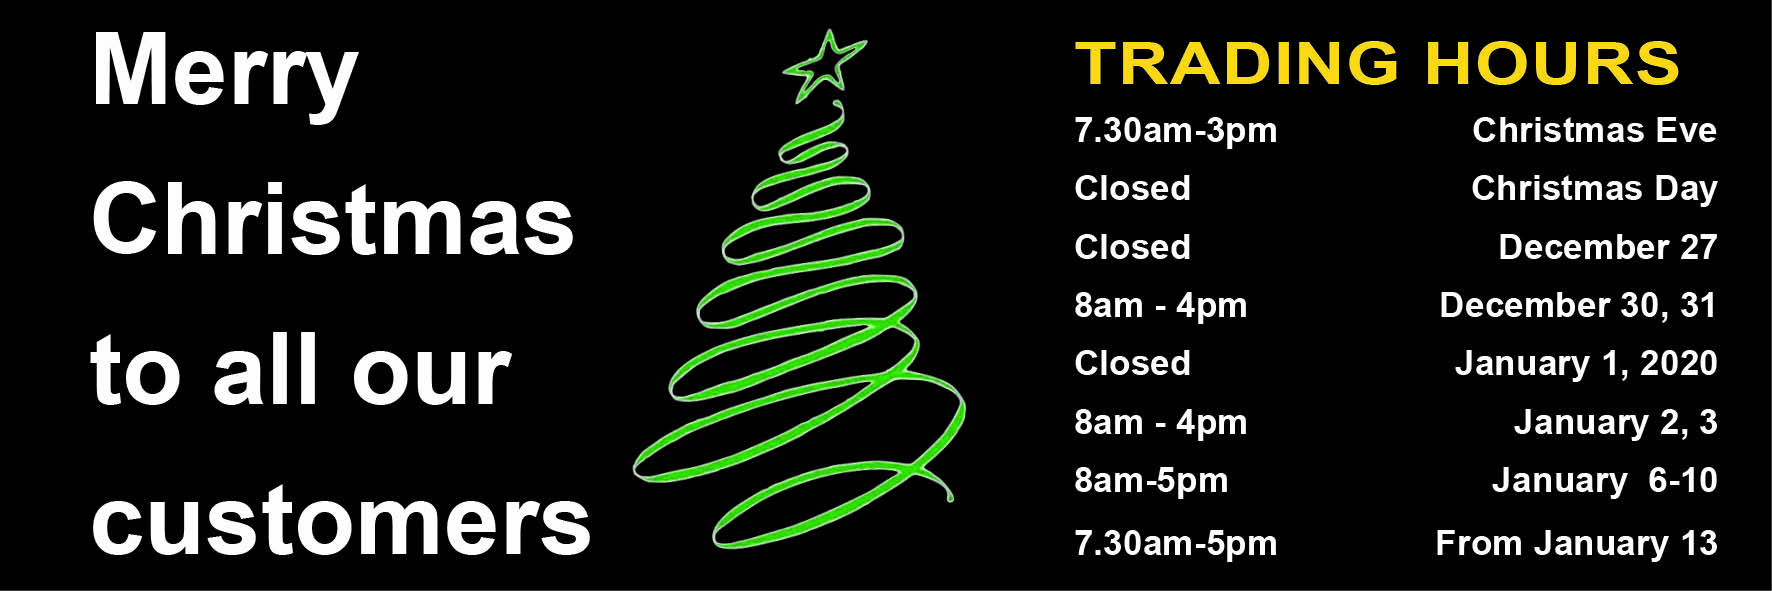 2019 trading hours